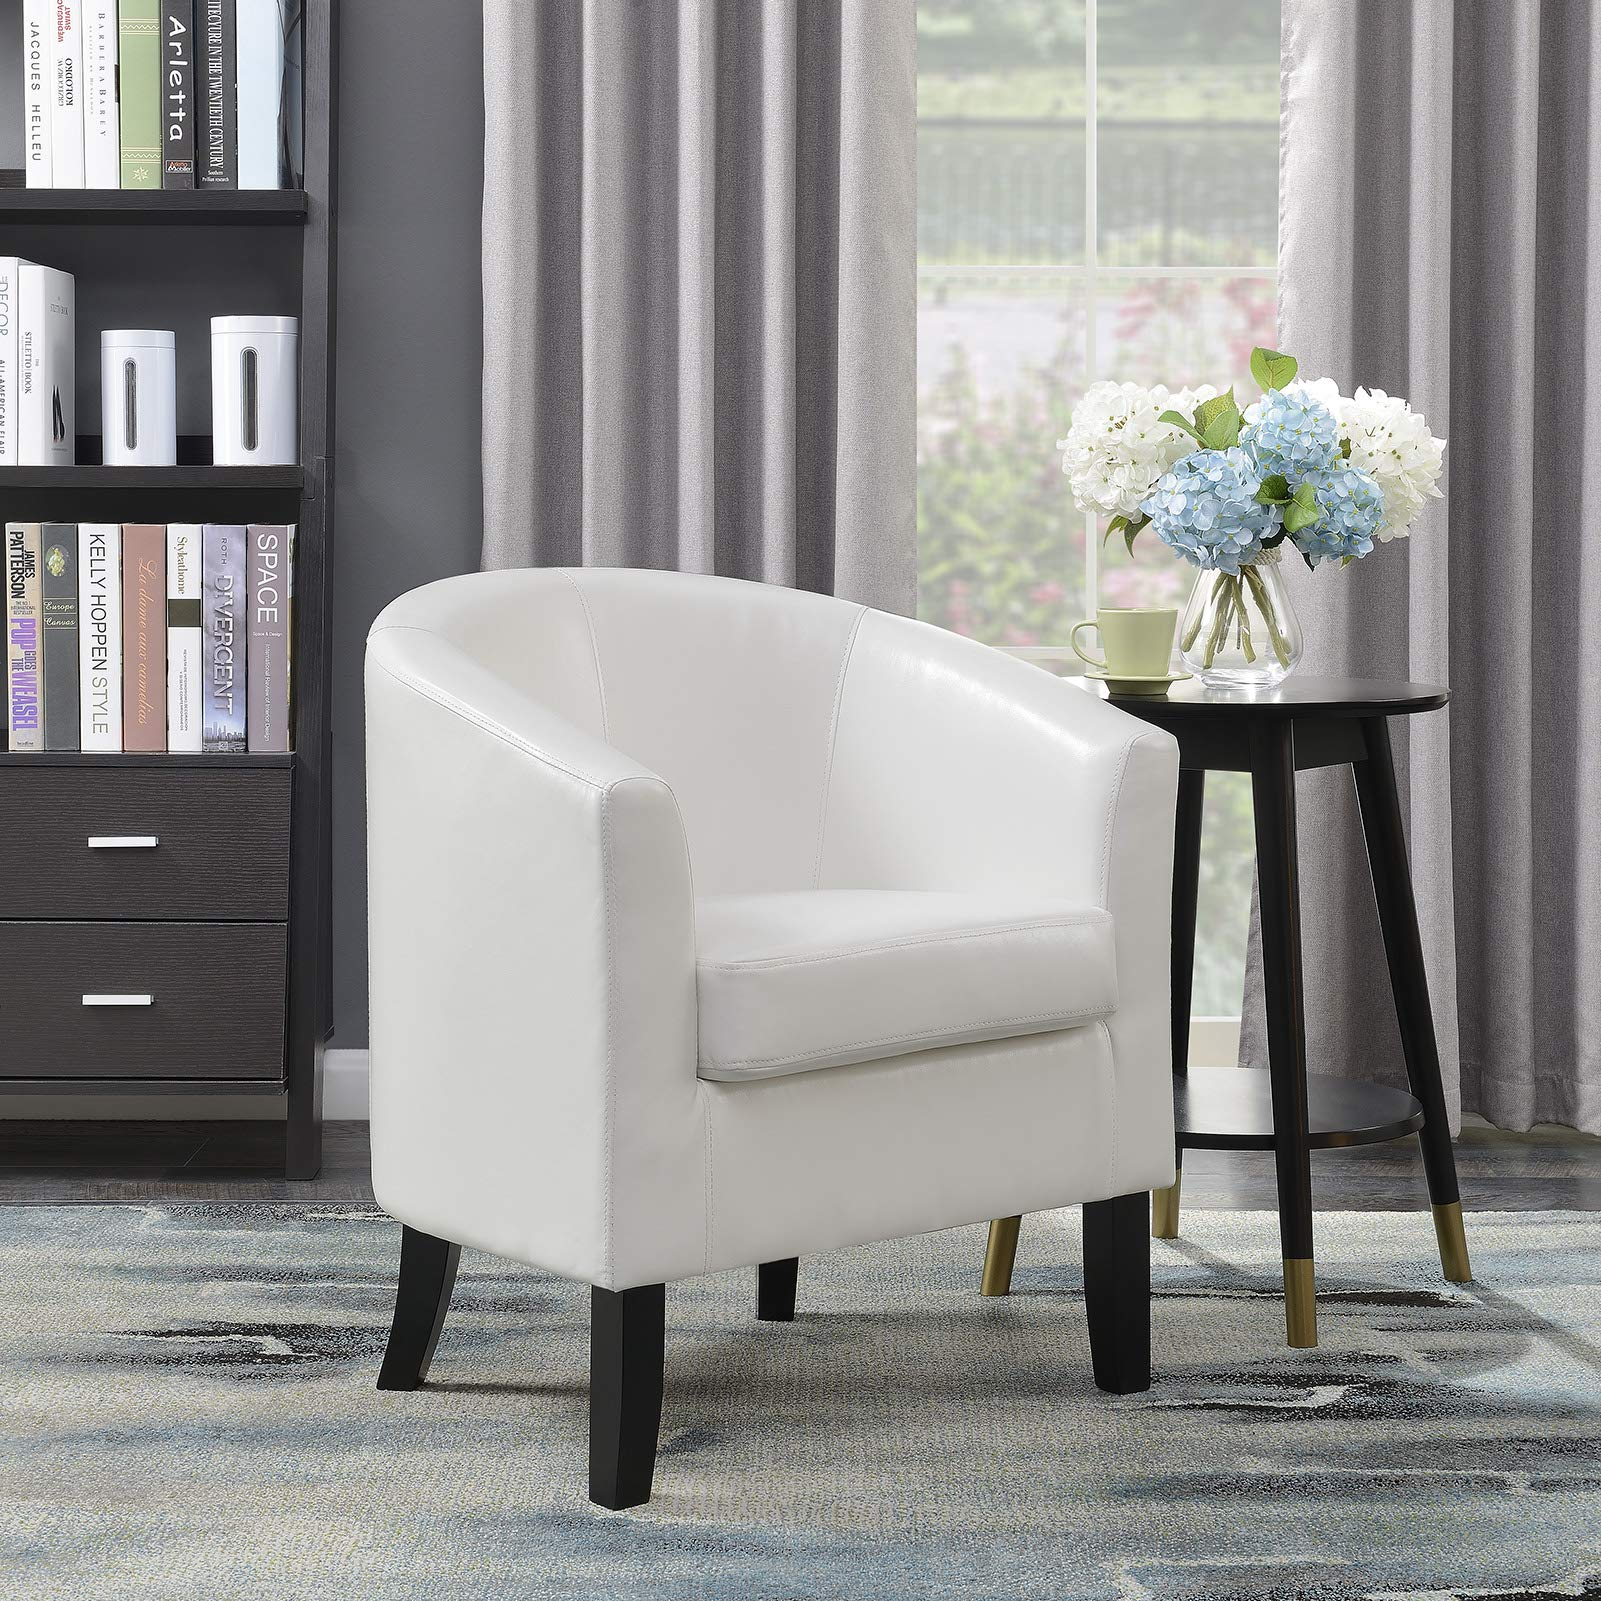 Belleze Club Chair Tub Faux Leather Armchair Seat Accent Living Room, White by Belleze